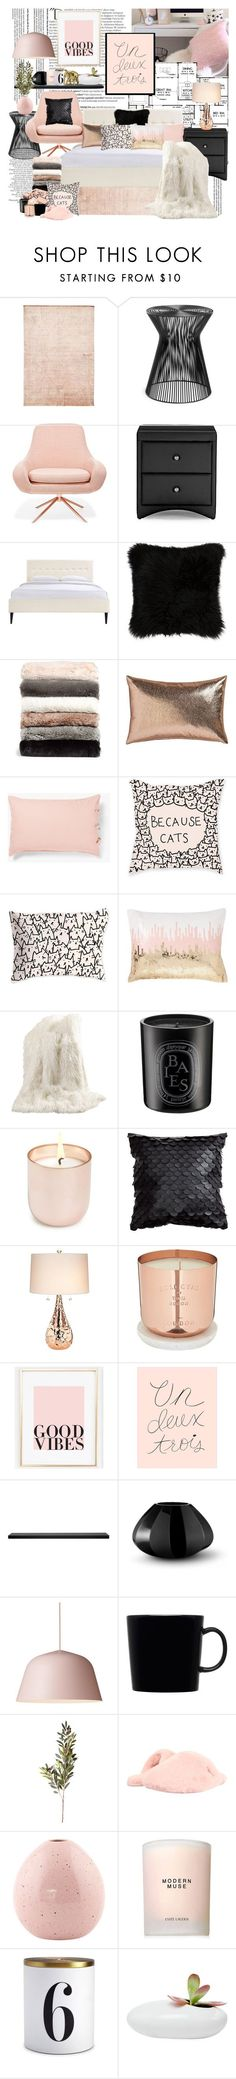 """""""good vibes bedroom"""" by missoumiss on Polyvore featuring interior, interiors, interior design, home, home decor, interior decorating, Balmain, Baxton Studio, Steel 